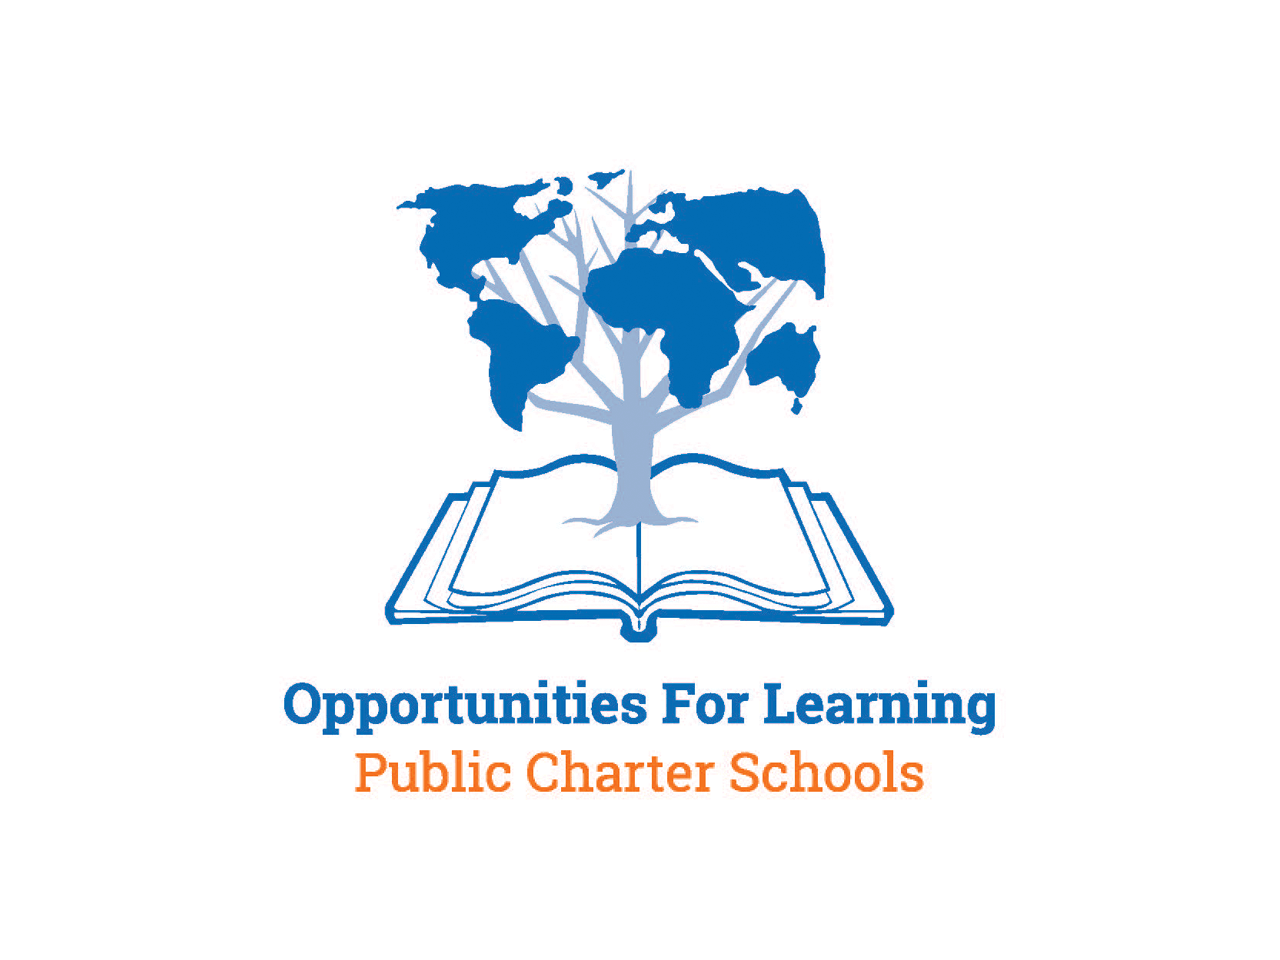 Education Management Systems / Opportunities For Learning